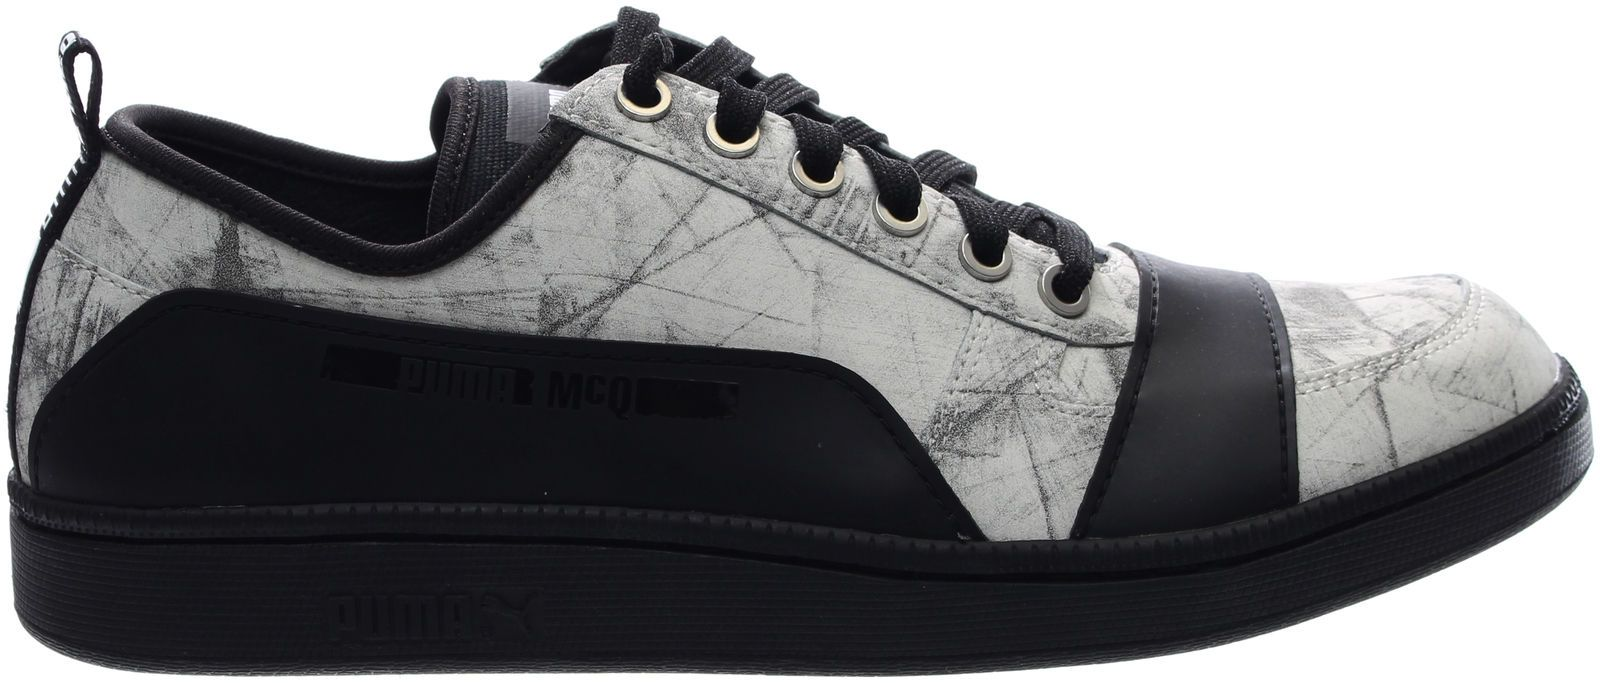 f99cffdd18 Details about Puma Alexander McQueen Serve Low Graphic Tennis Shoes ...